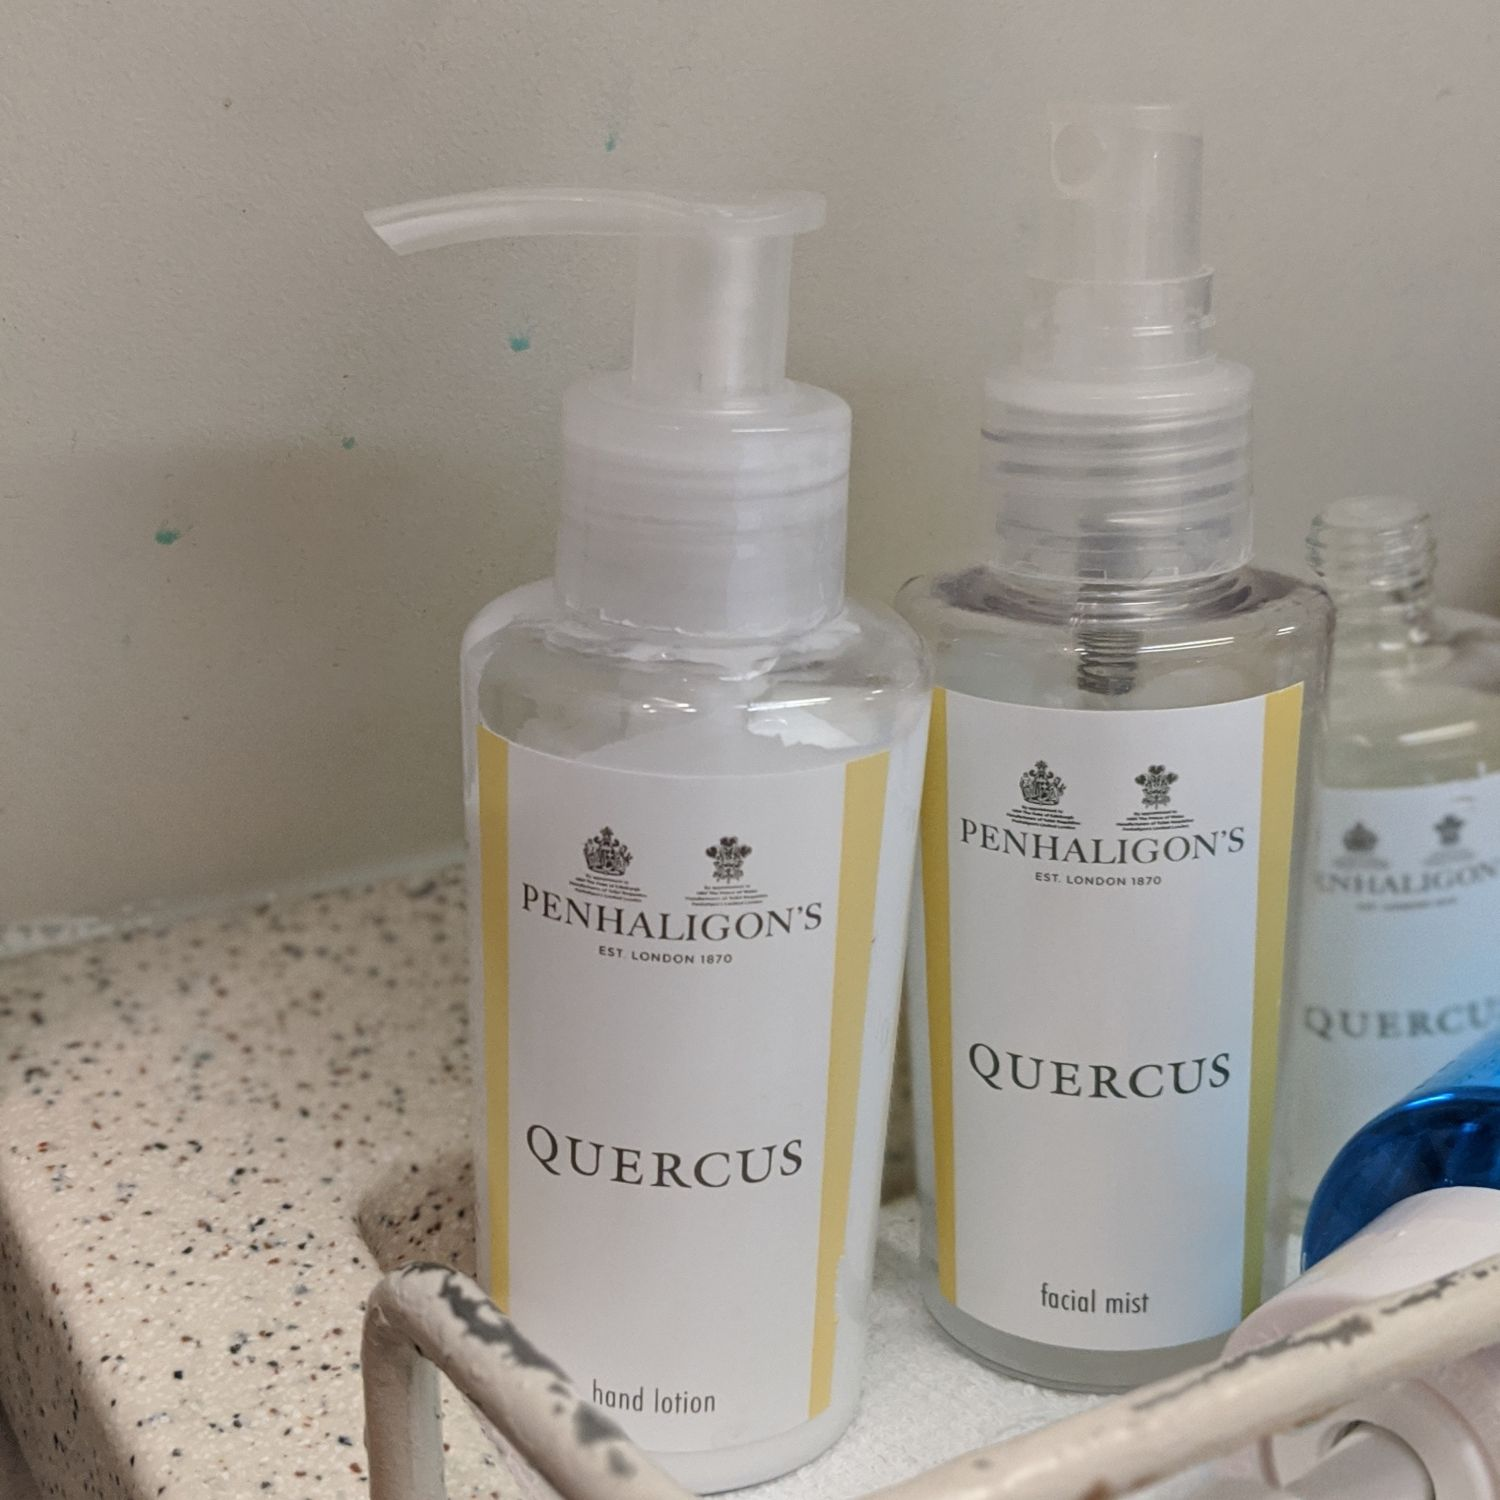 Regional Business Class on Singapore Airlines SQ998 Airbus A330-300 Penhaligon's Bathroom Amenities